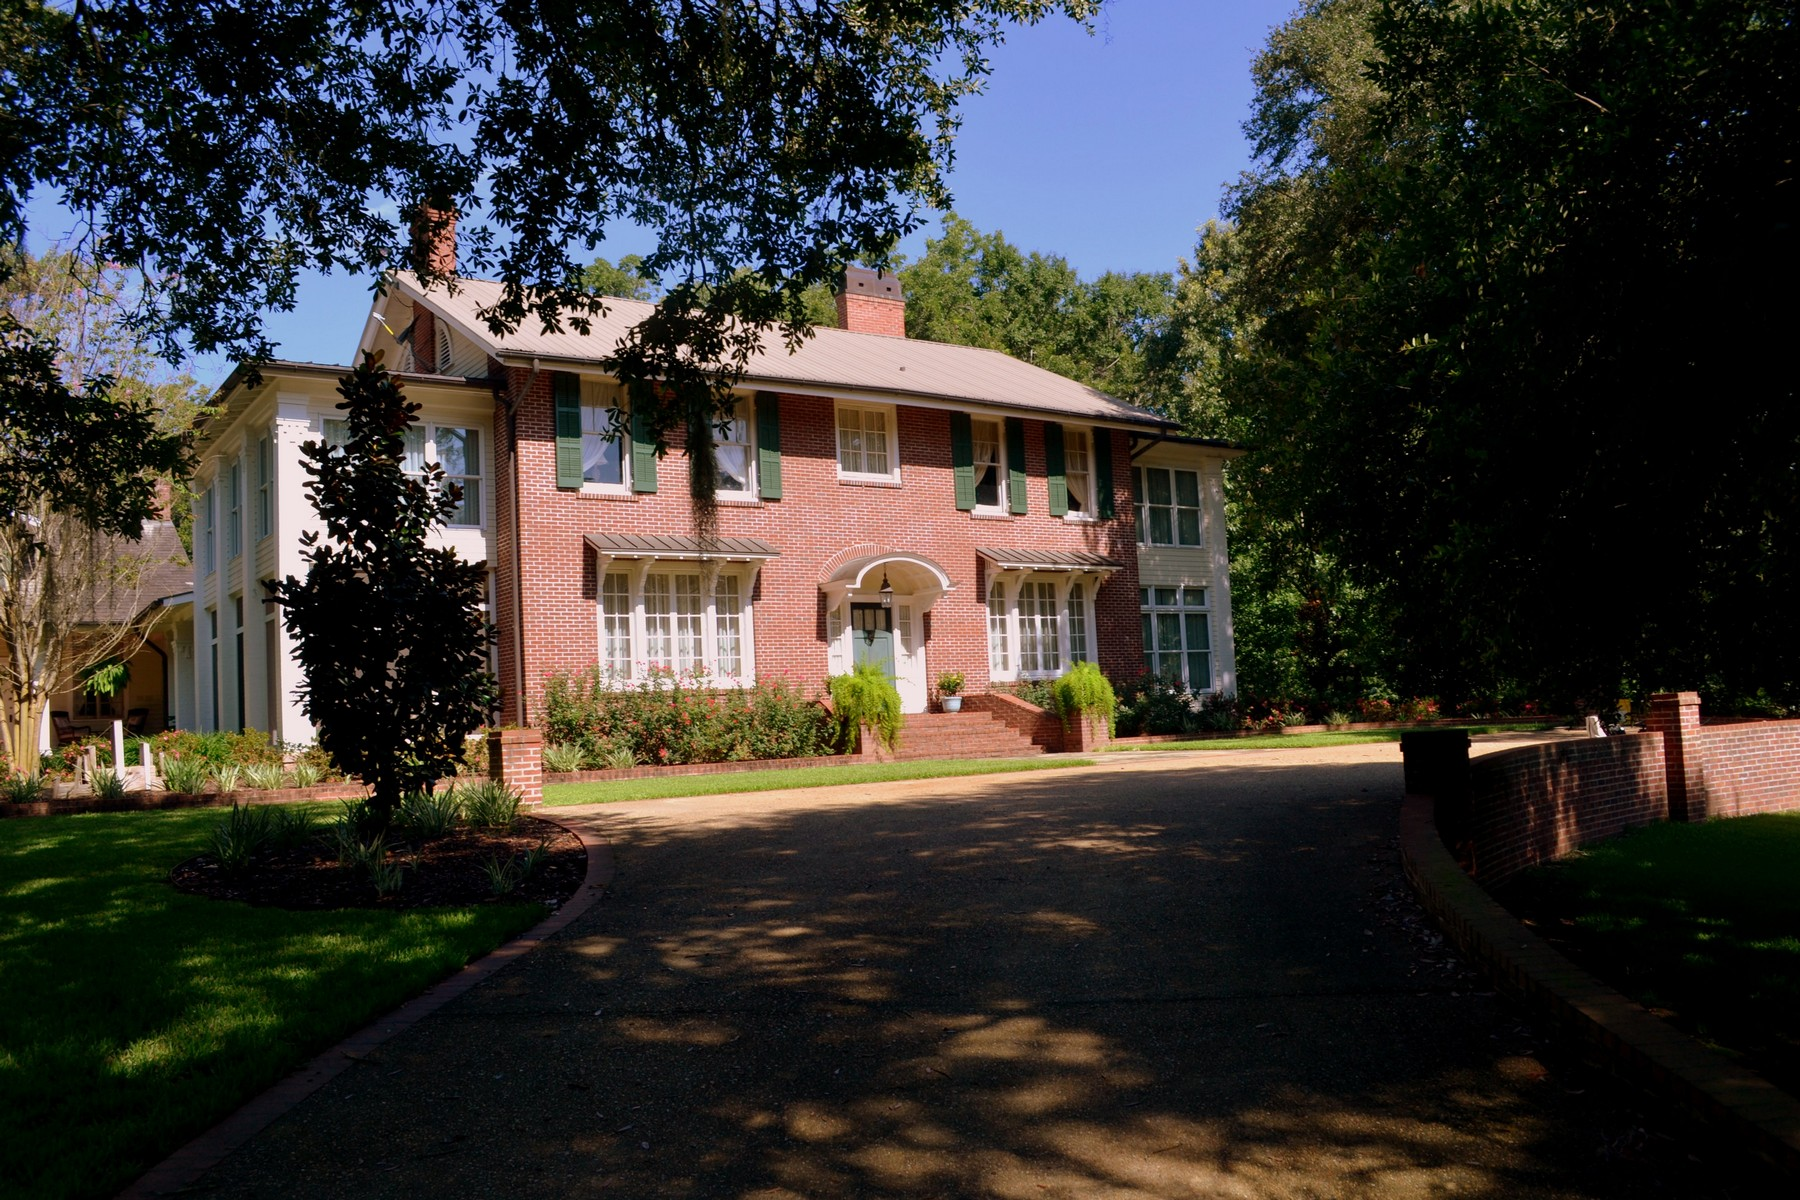 Single Family Home for Sale at Ormonde - Natchez, Mississippi 1164 Lower Woodville Rd Natchez, Mississippi 39120 United States